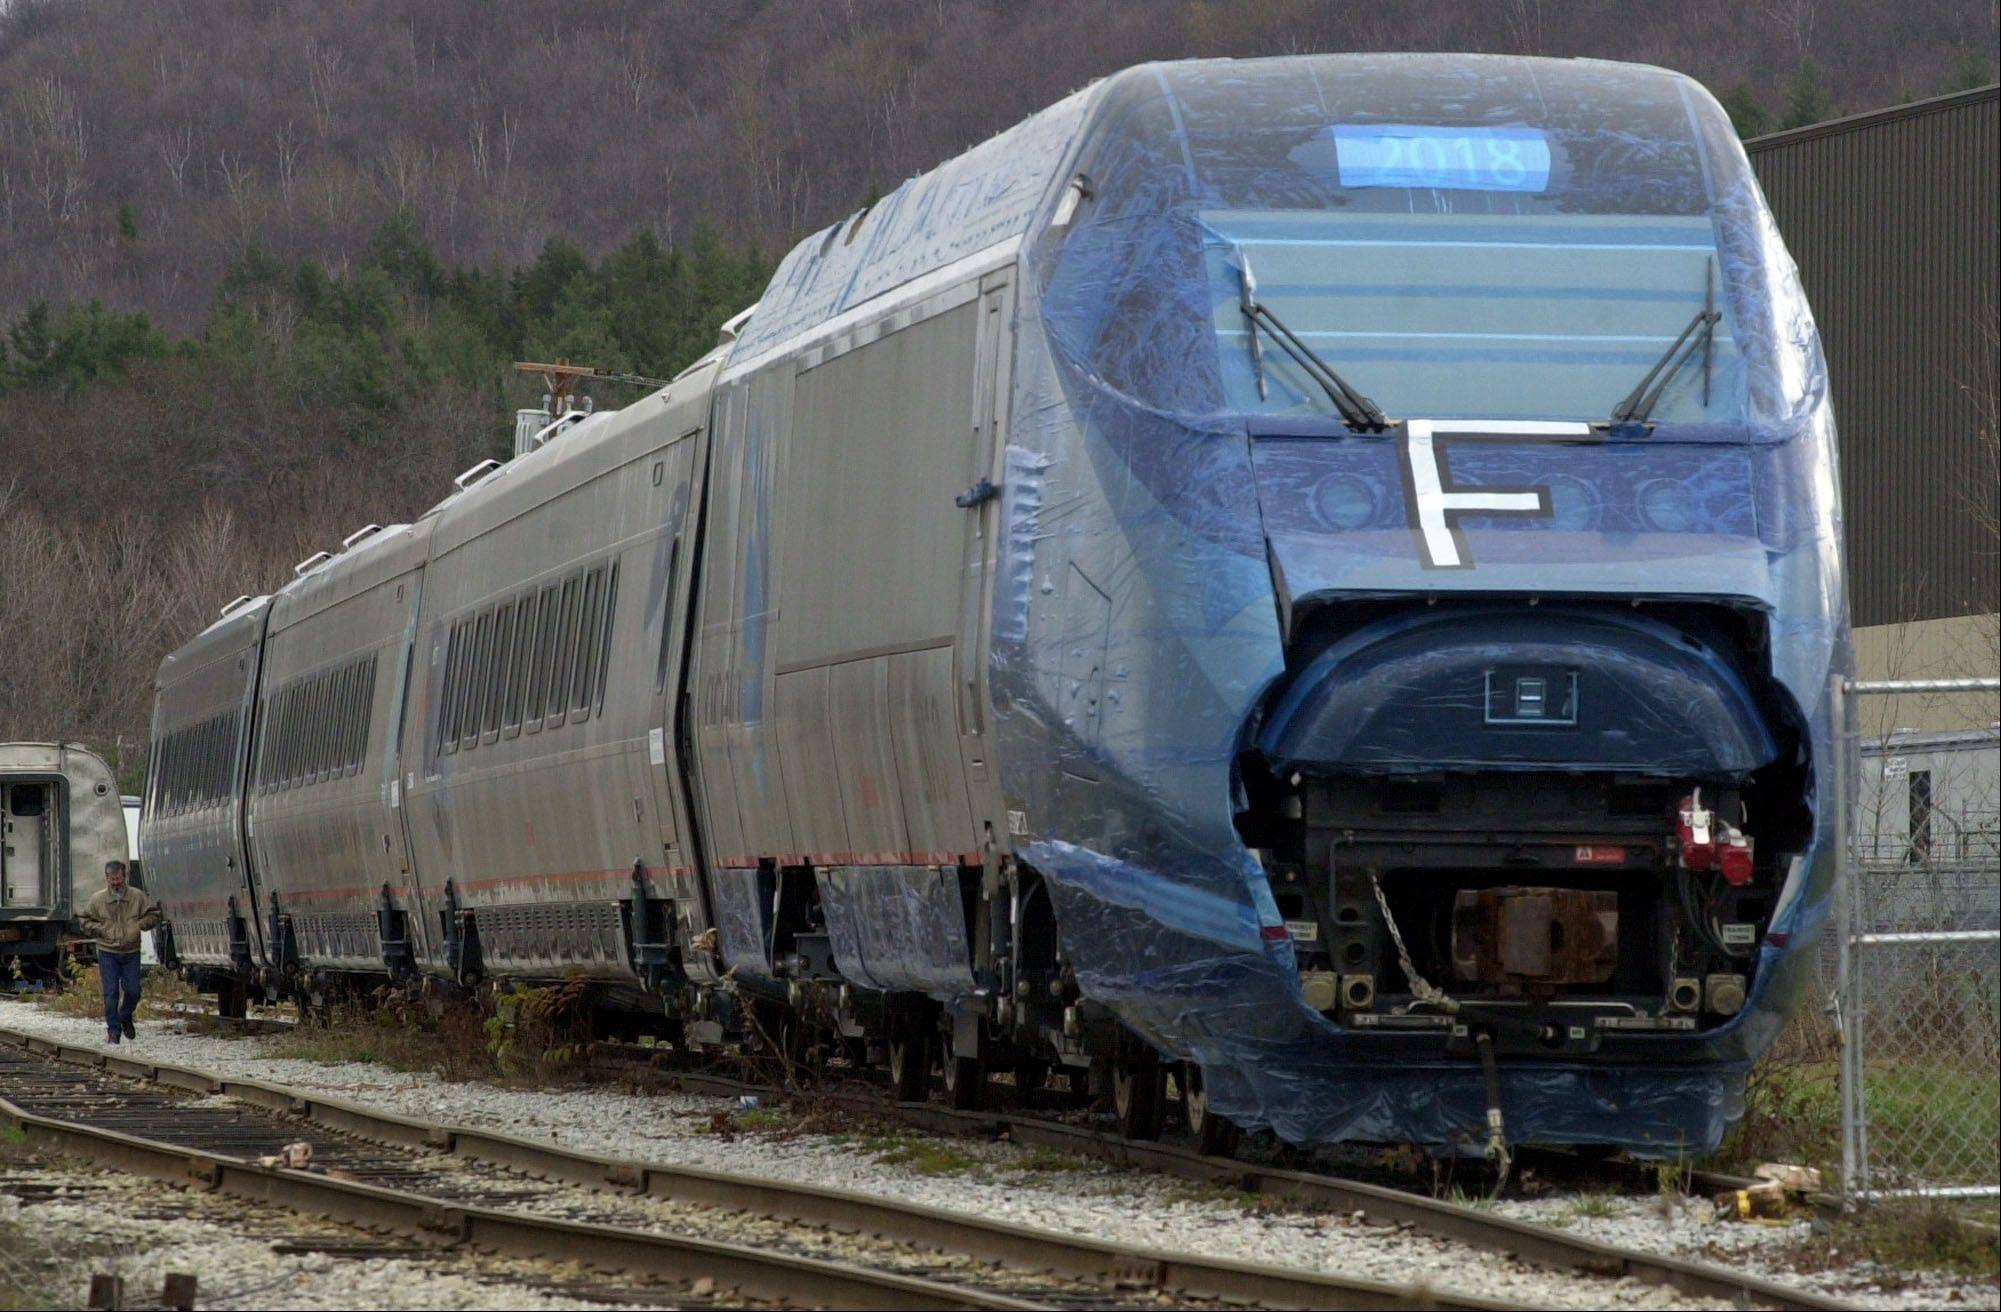 Amtrak says ridership has increased in the first six months of fiscal year 2013, with ridership in March setting a record as the single best month ever in Amtrak�s history.